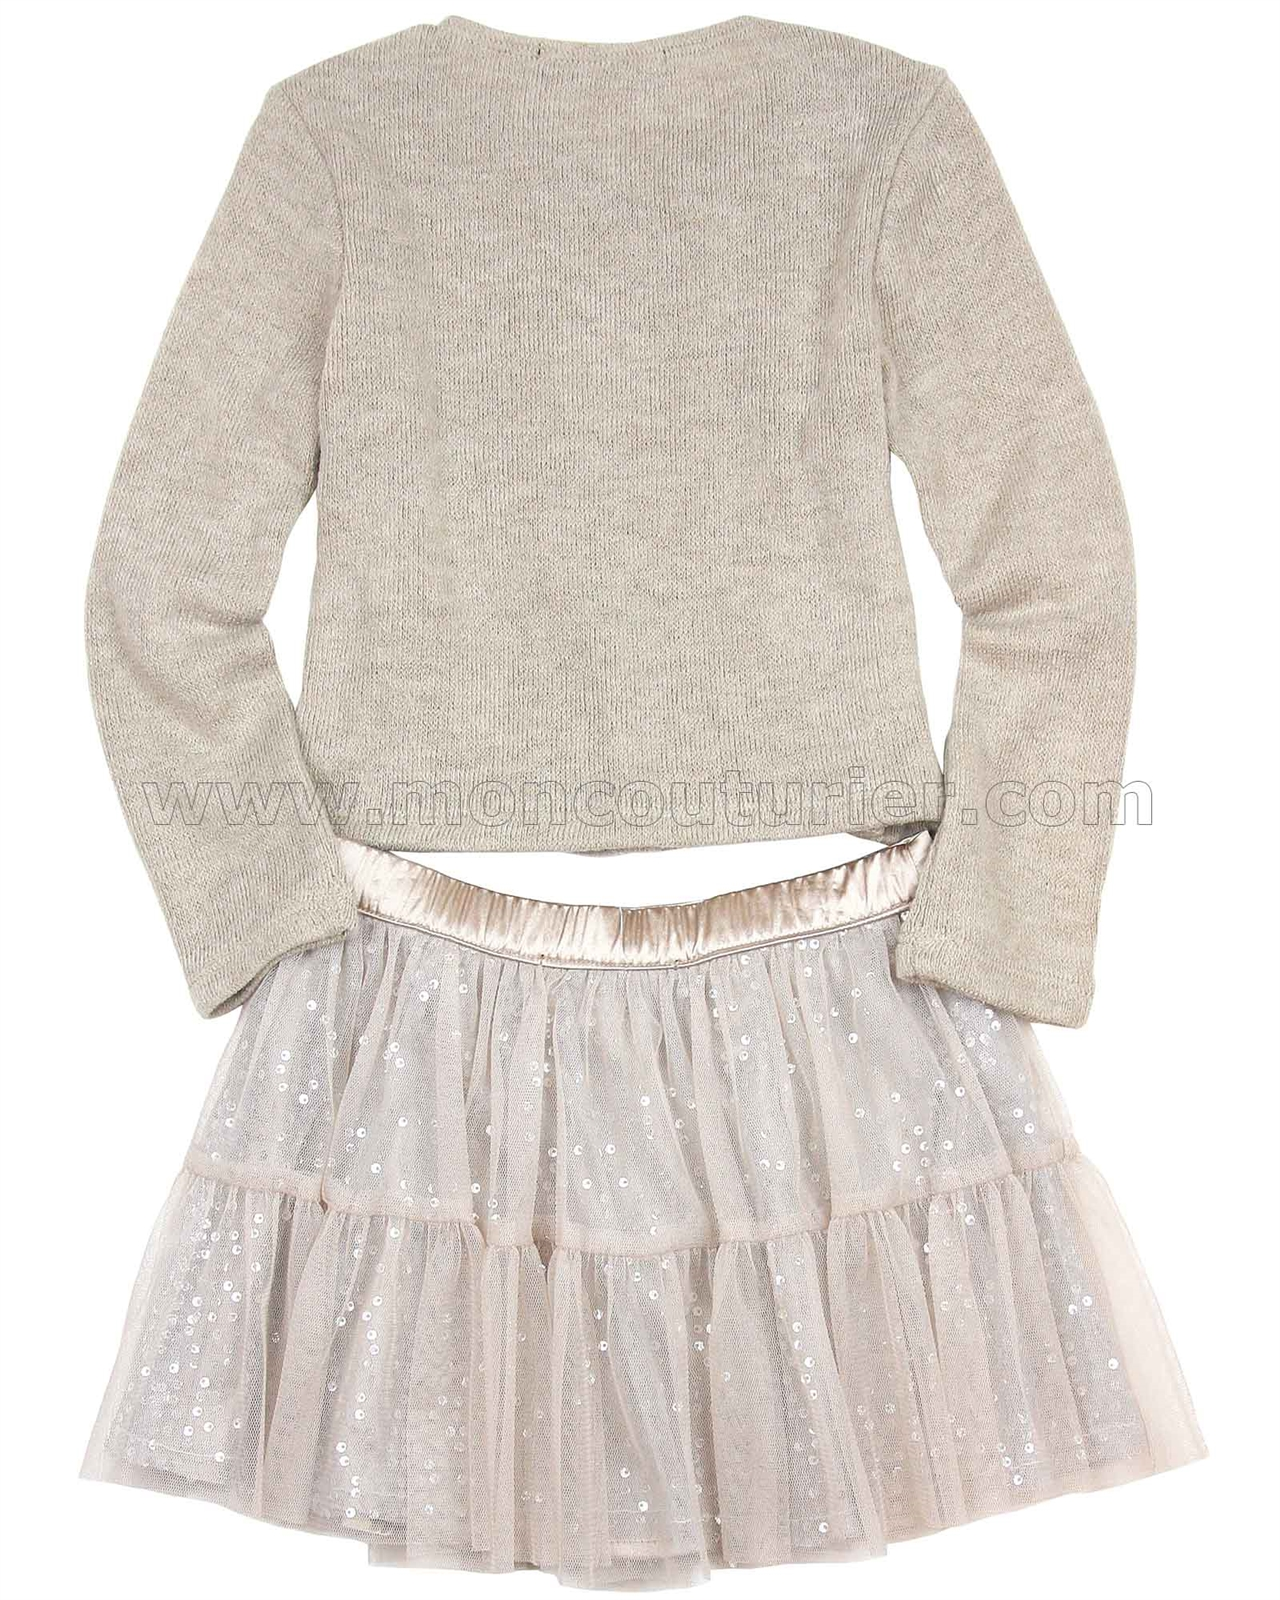 1f7a23612 Biscotti Graceful Glam Sweater and Skirt Set Taupe | Biscotti and ...